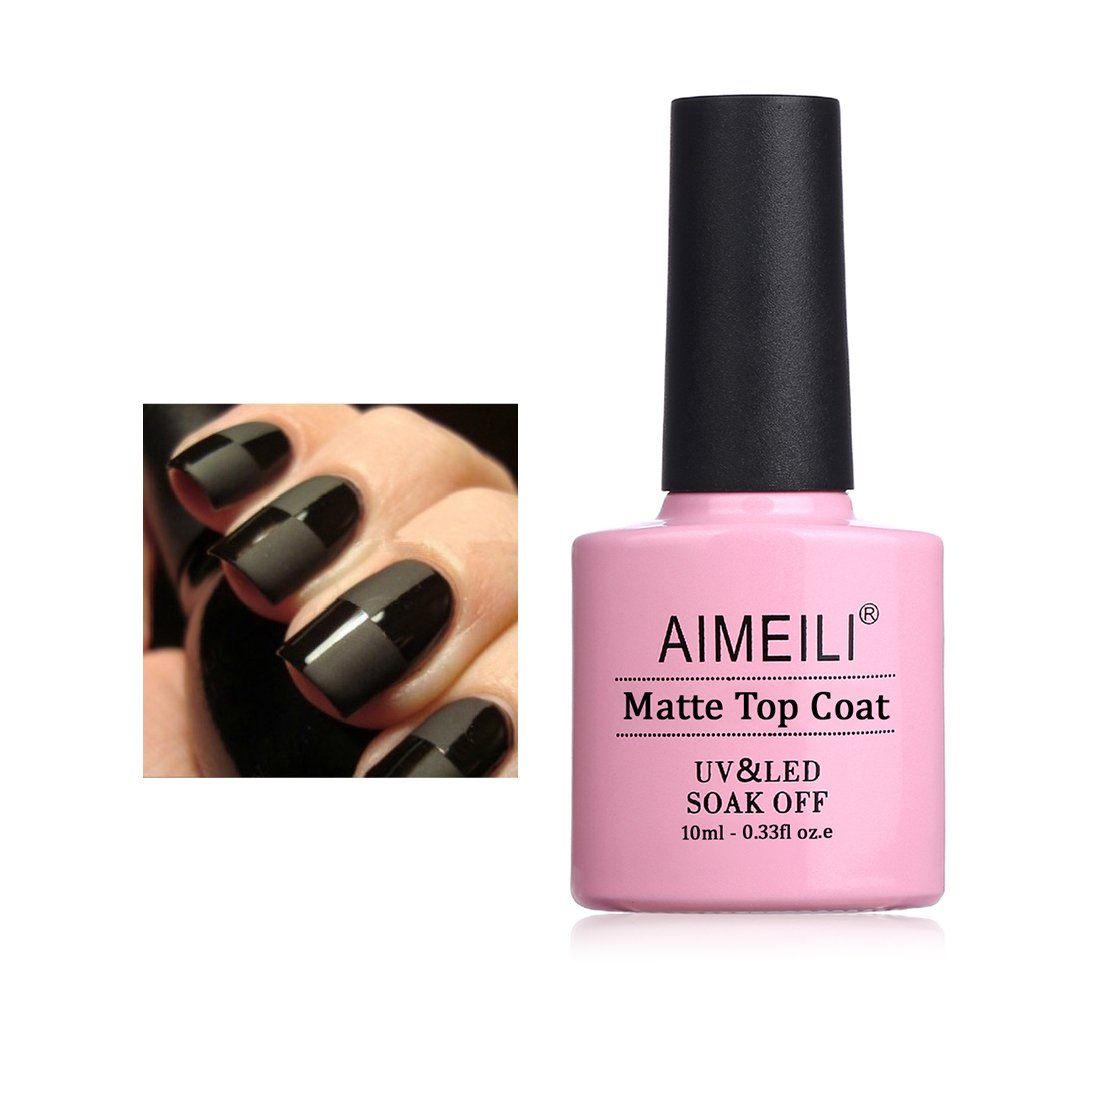 AIMEILI Soak Off UV LED Gel Nail Polish - No Wipe Top Coat 10ml